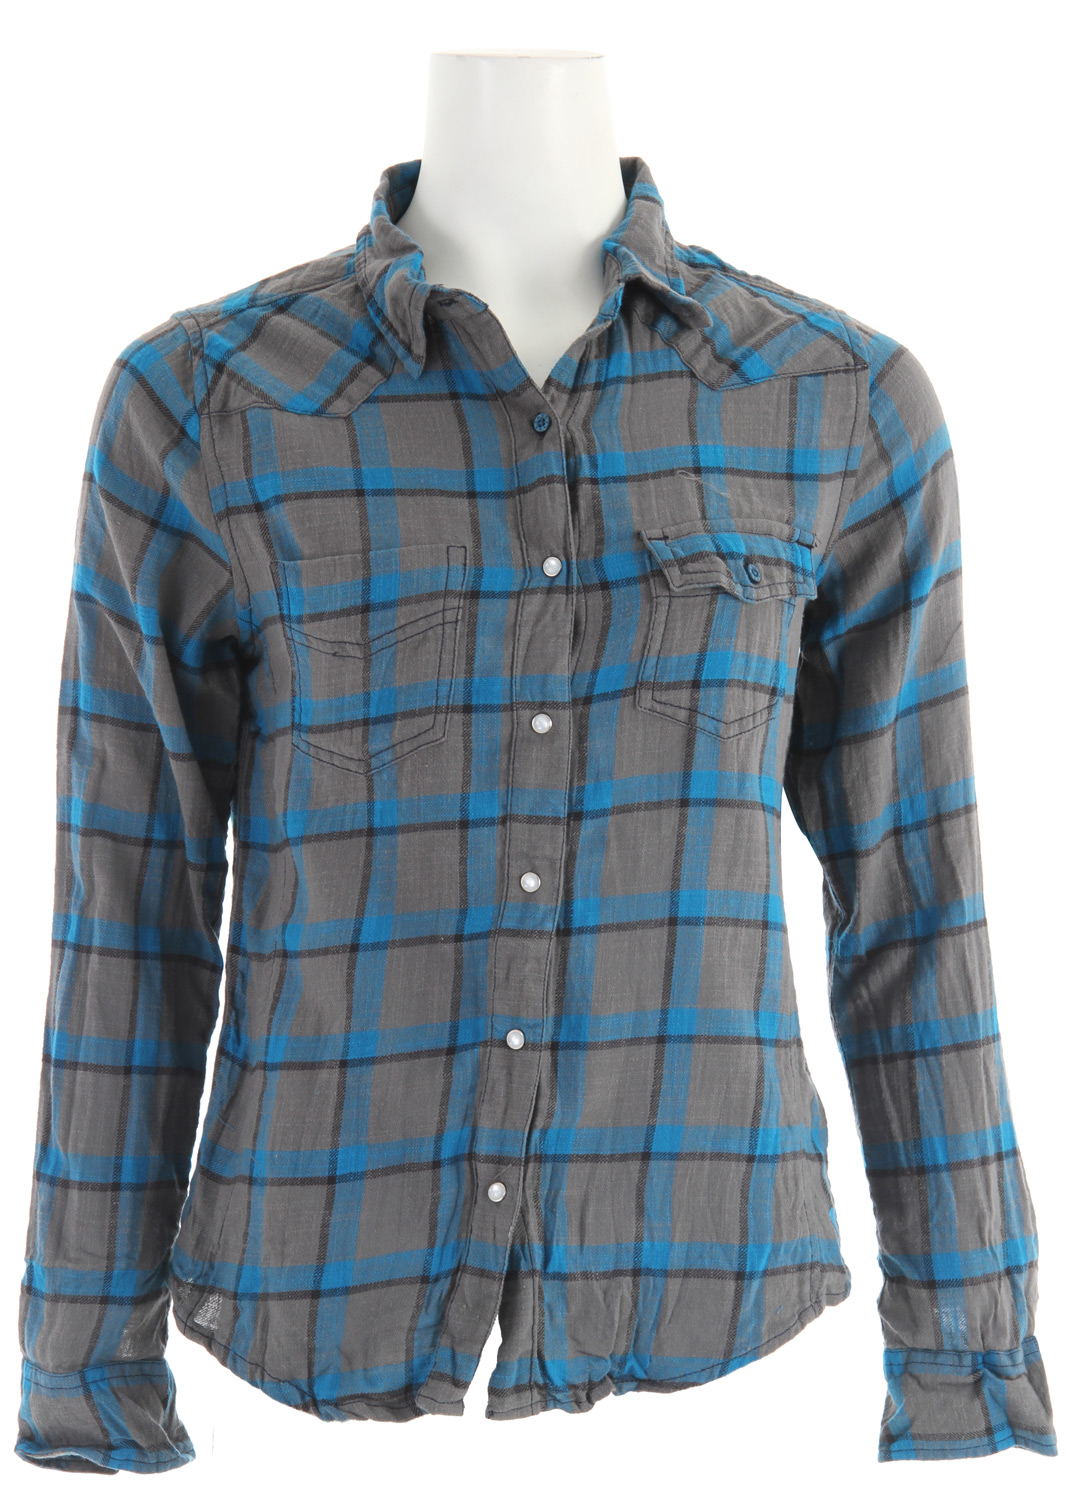 Surf Key Features of the Roxy Foggy Harbor Shirt: Cool color and western whimsy work their magic to create a shirt that's down to ride Includes a snap front and chest pockets 26-inch length 100% cotton slub yarn dye plaid Machine wash - $30.95